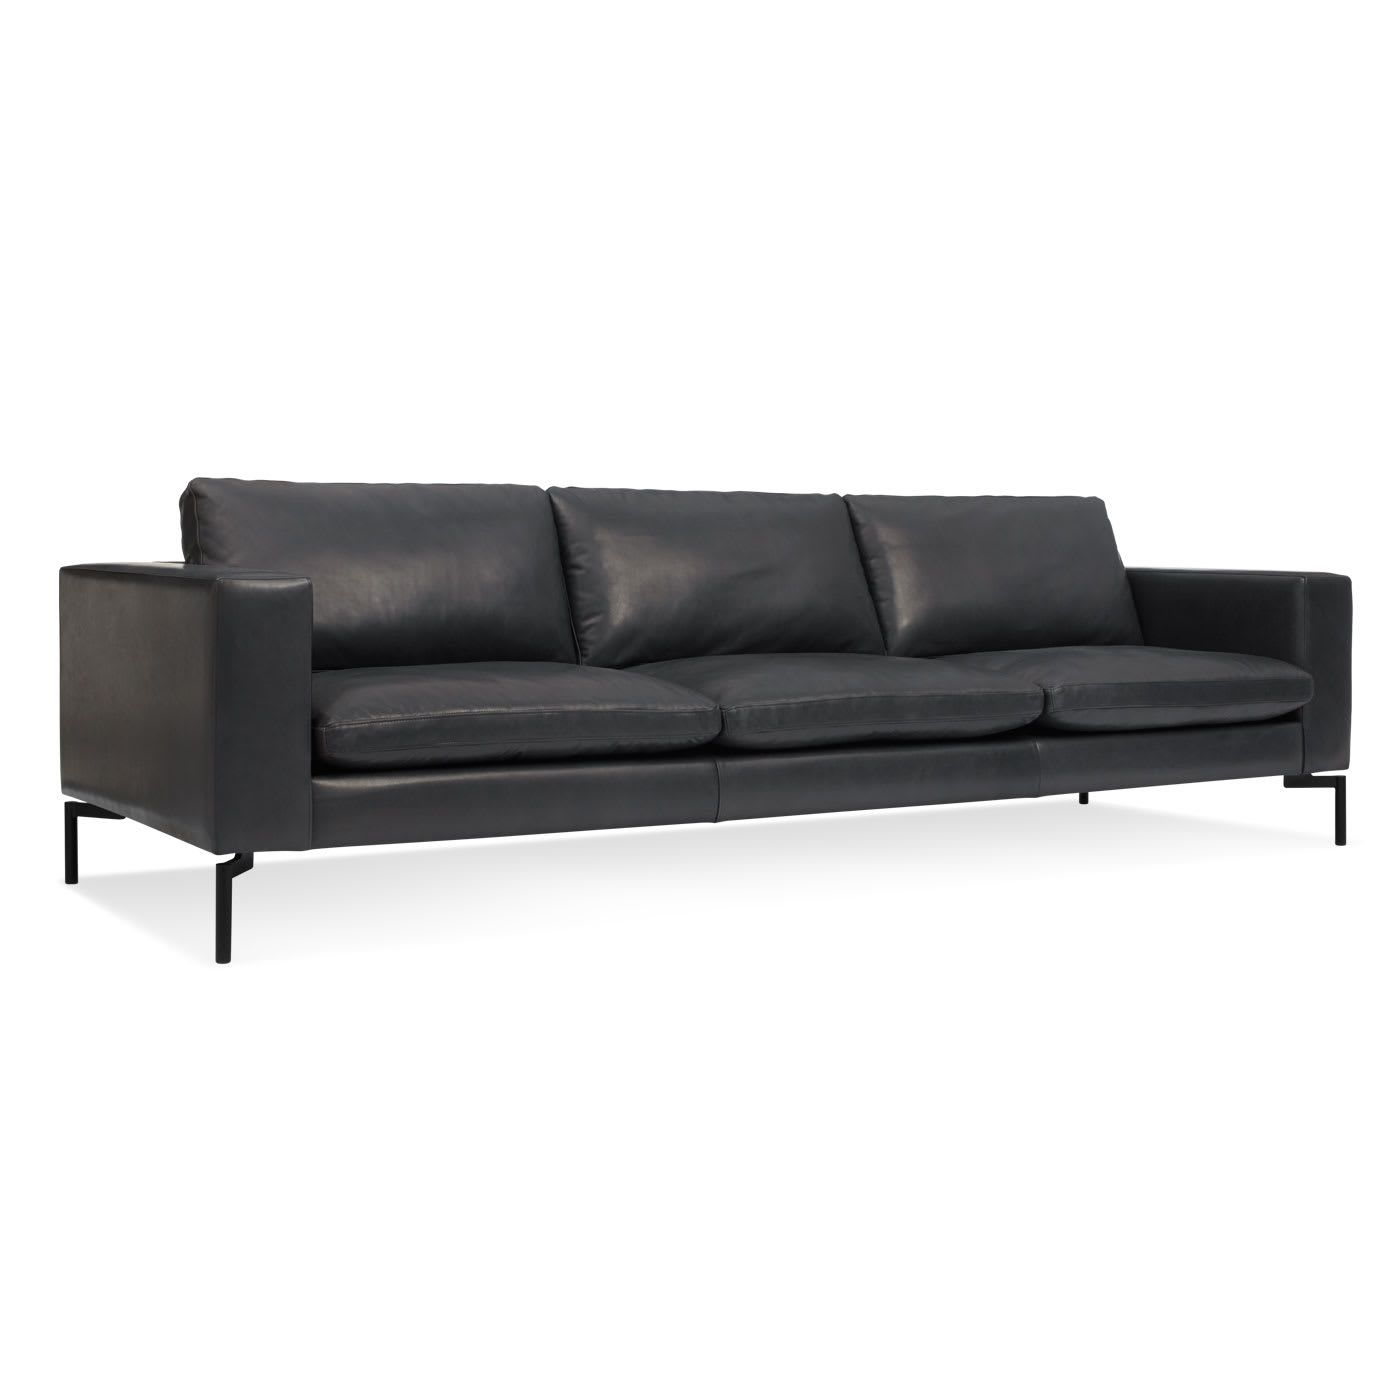 New Standard 104 Leather Sofa Modern Leather Sofa Leather Sofa